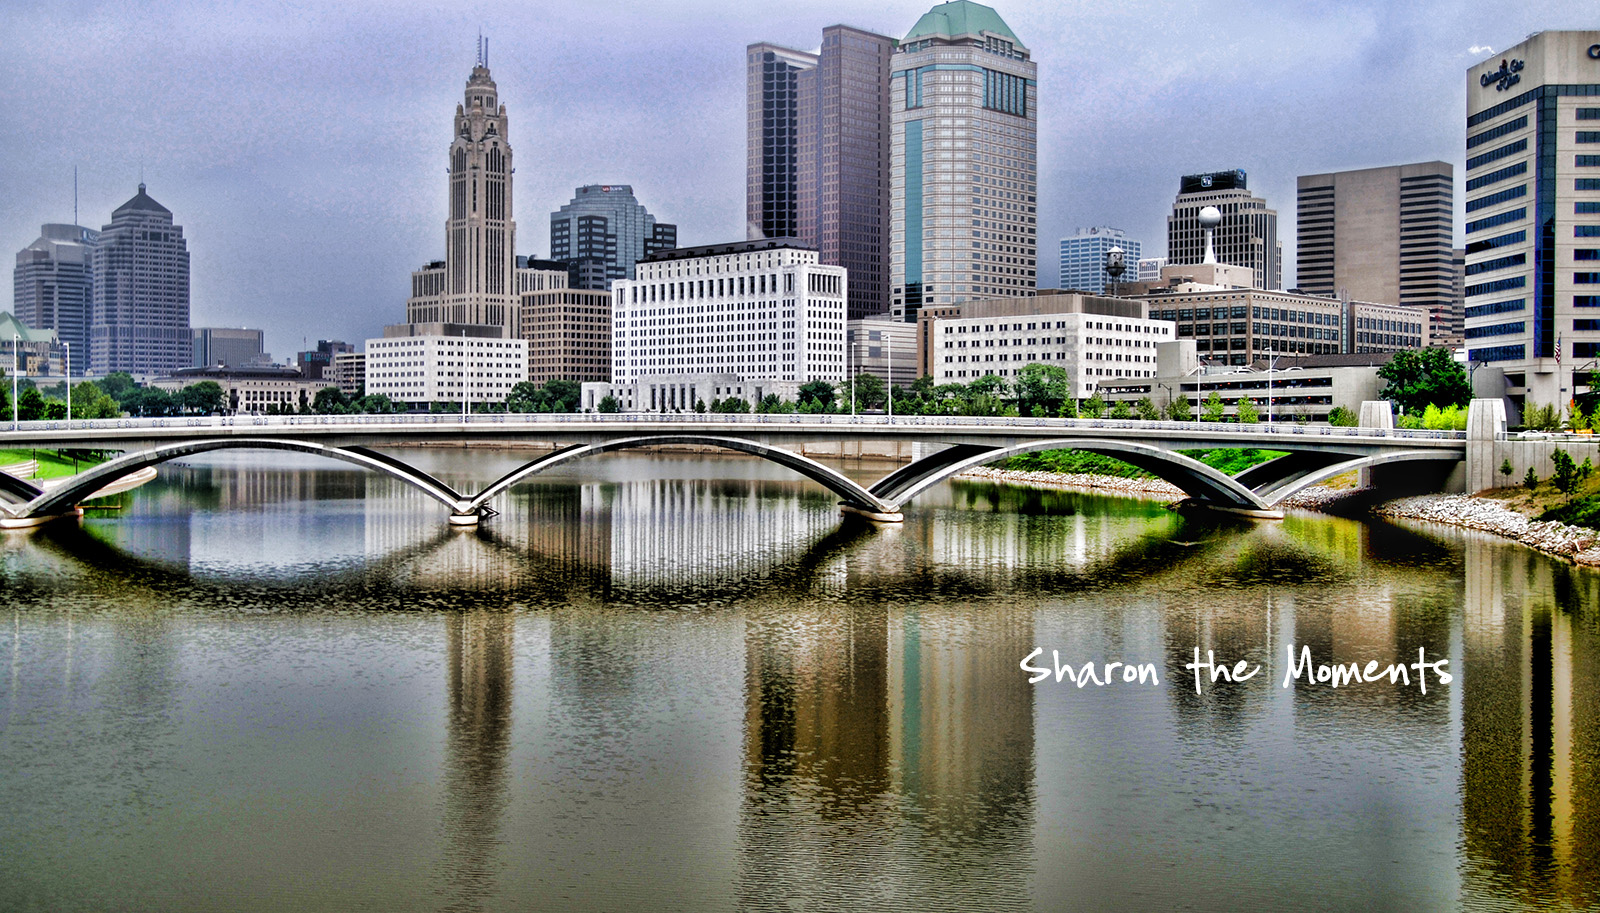 Monday Monday Spring .... Bring it on! Columbus Ohio Skyline|Sharon the Moments Blog